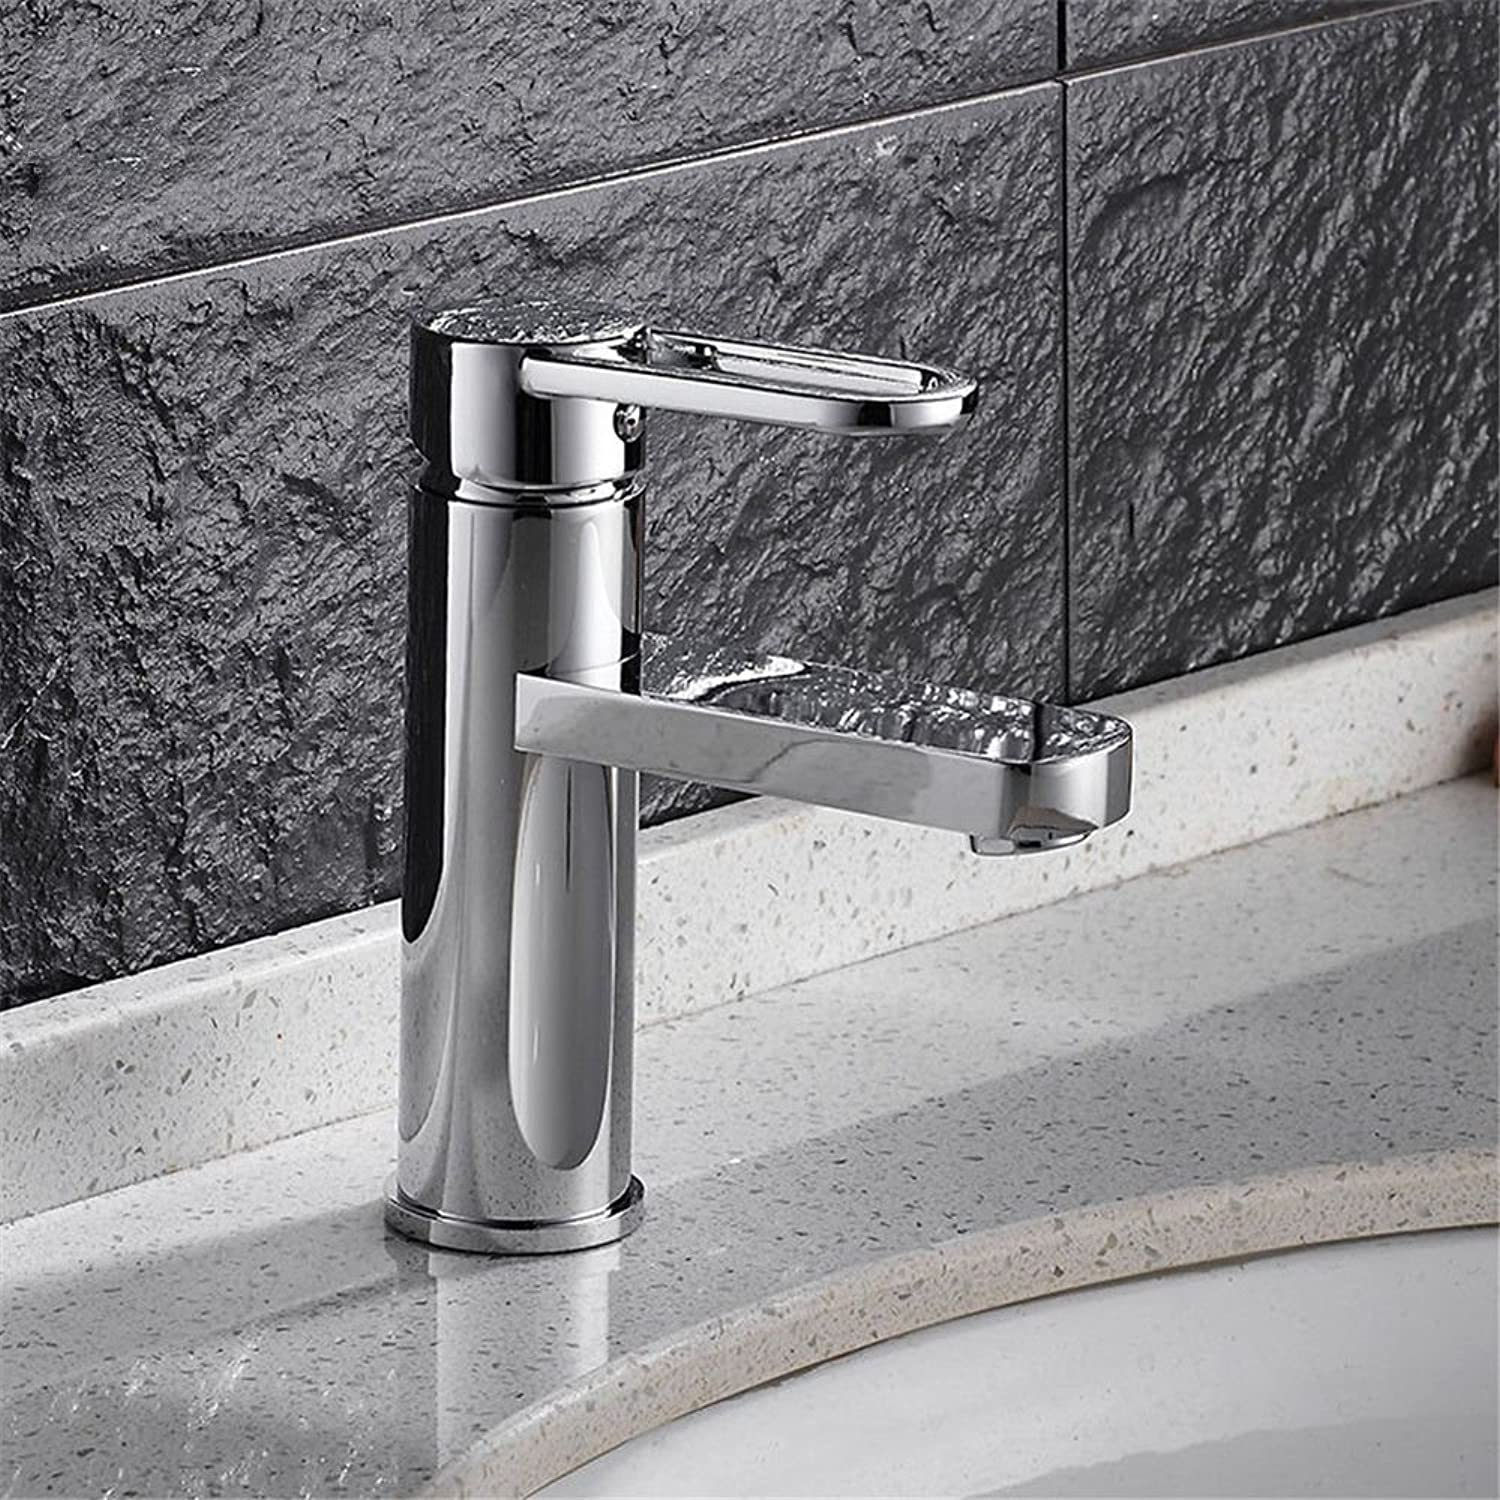 ETERNAL QUALITY Bathroom Sink Basin Tap Brass Mixer Tap Washroom Mixer Faucet Copper minimalist bathroom faucet back-up hot and cold-water faucet basin mixer a Kitchen Si